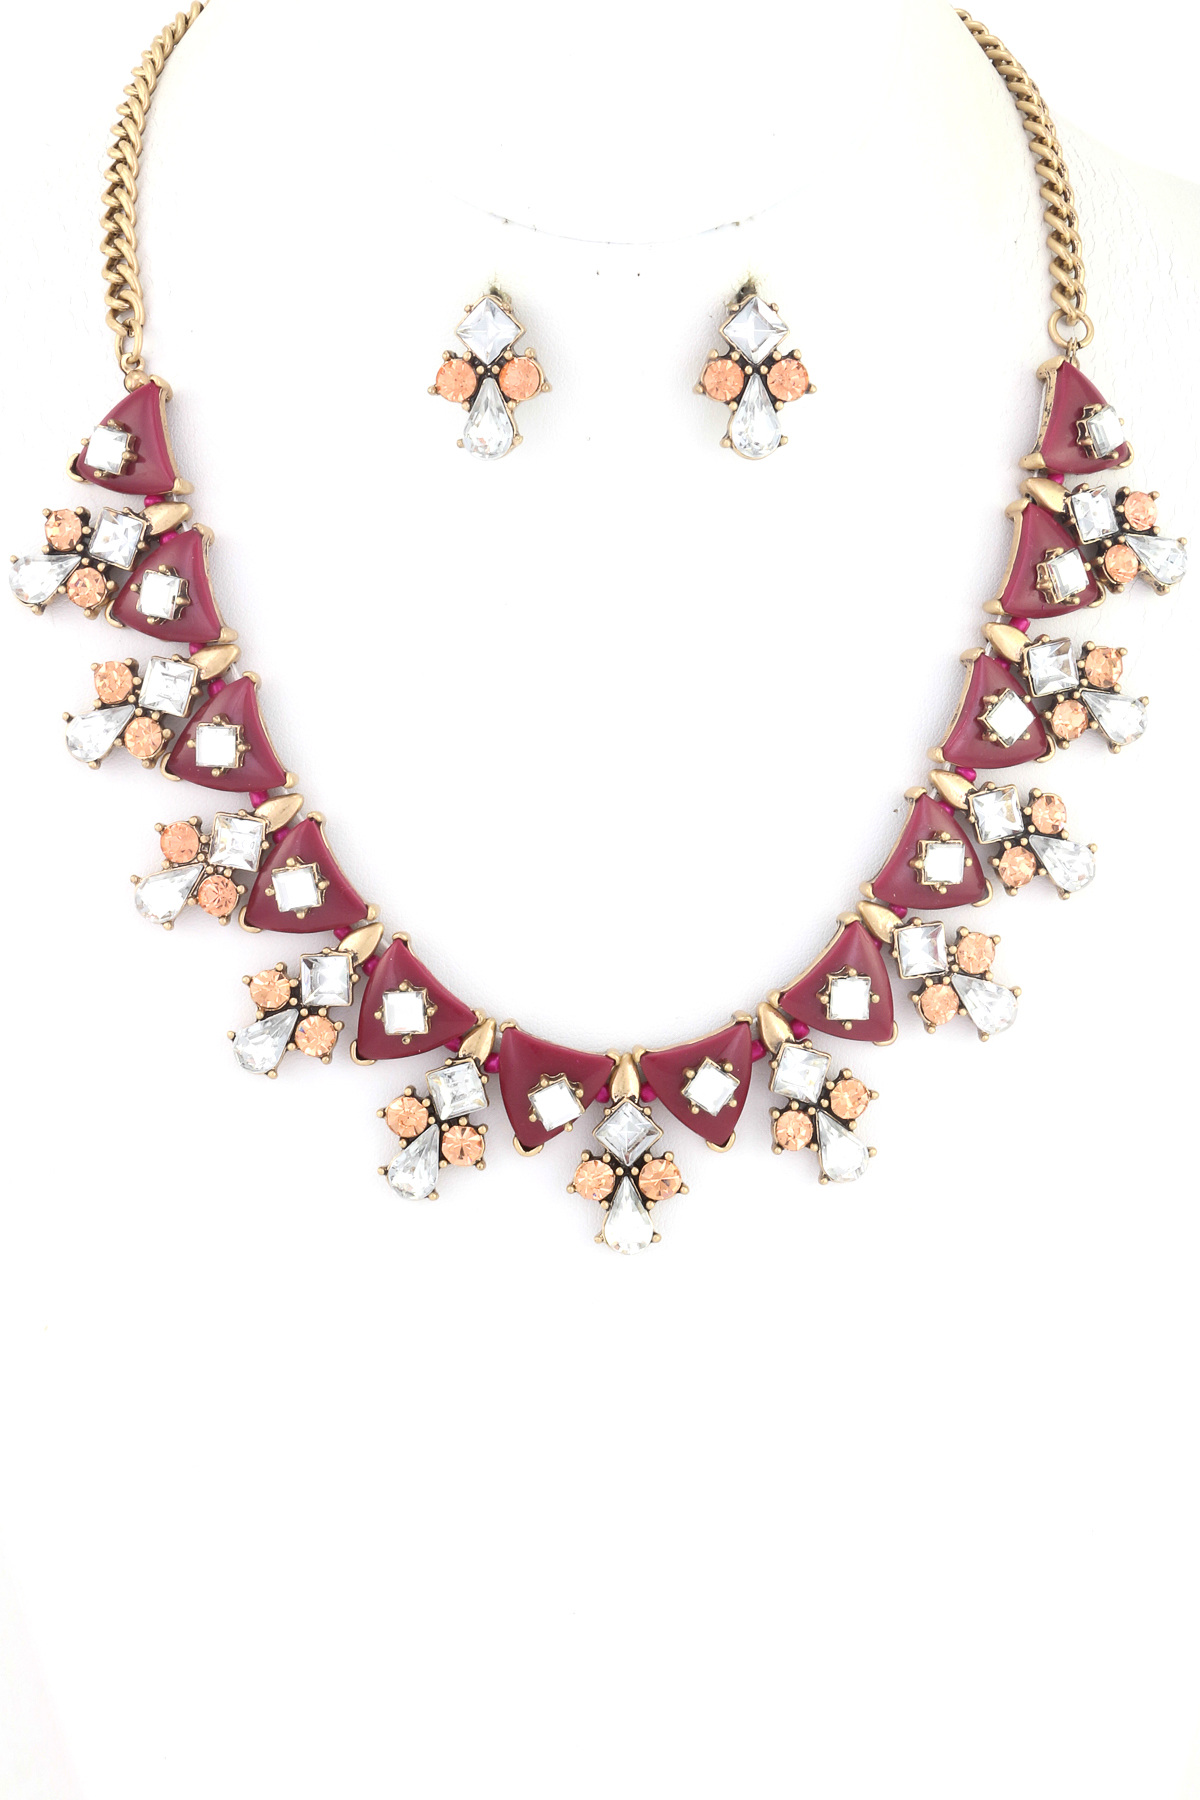 Triangular Acrylic Jewel necklace Set - Necklaces